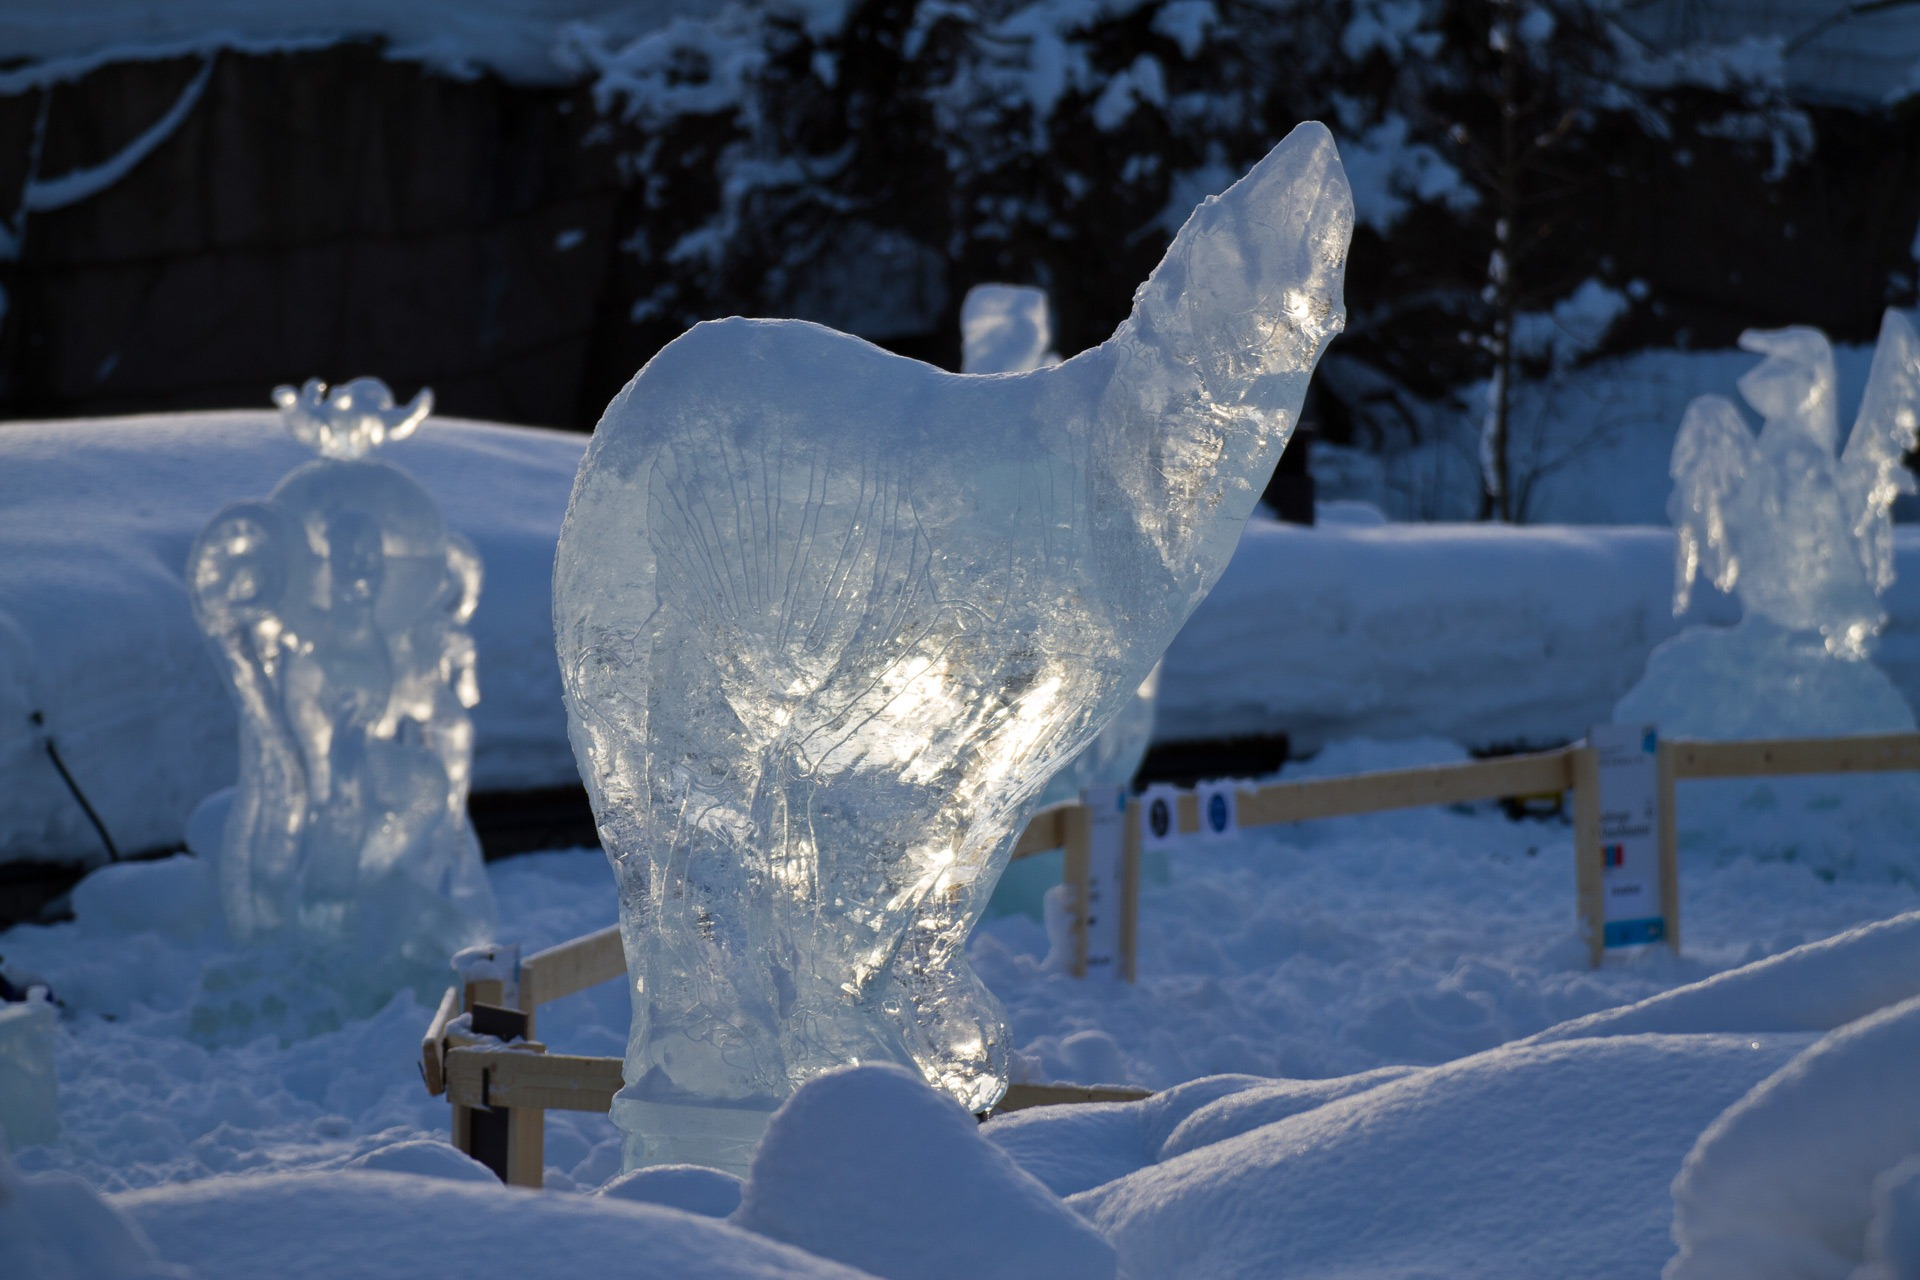 Ice sculptures  Photography blog by Sampsa Sulonen